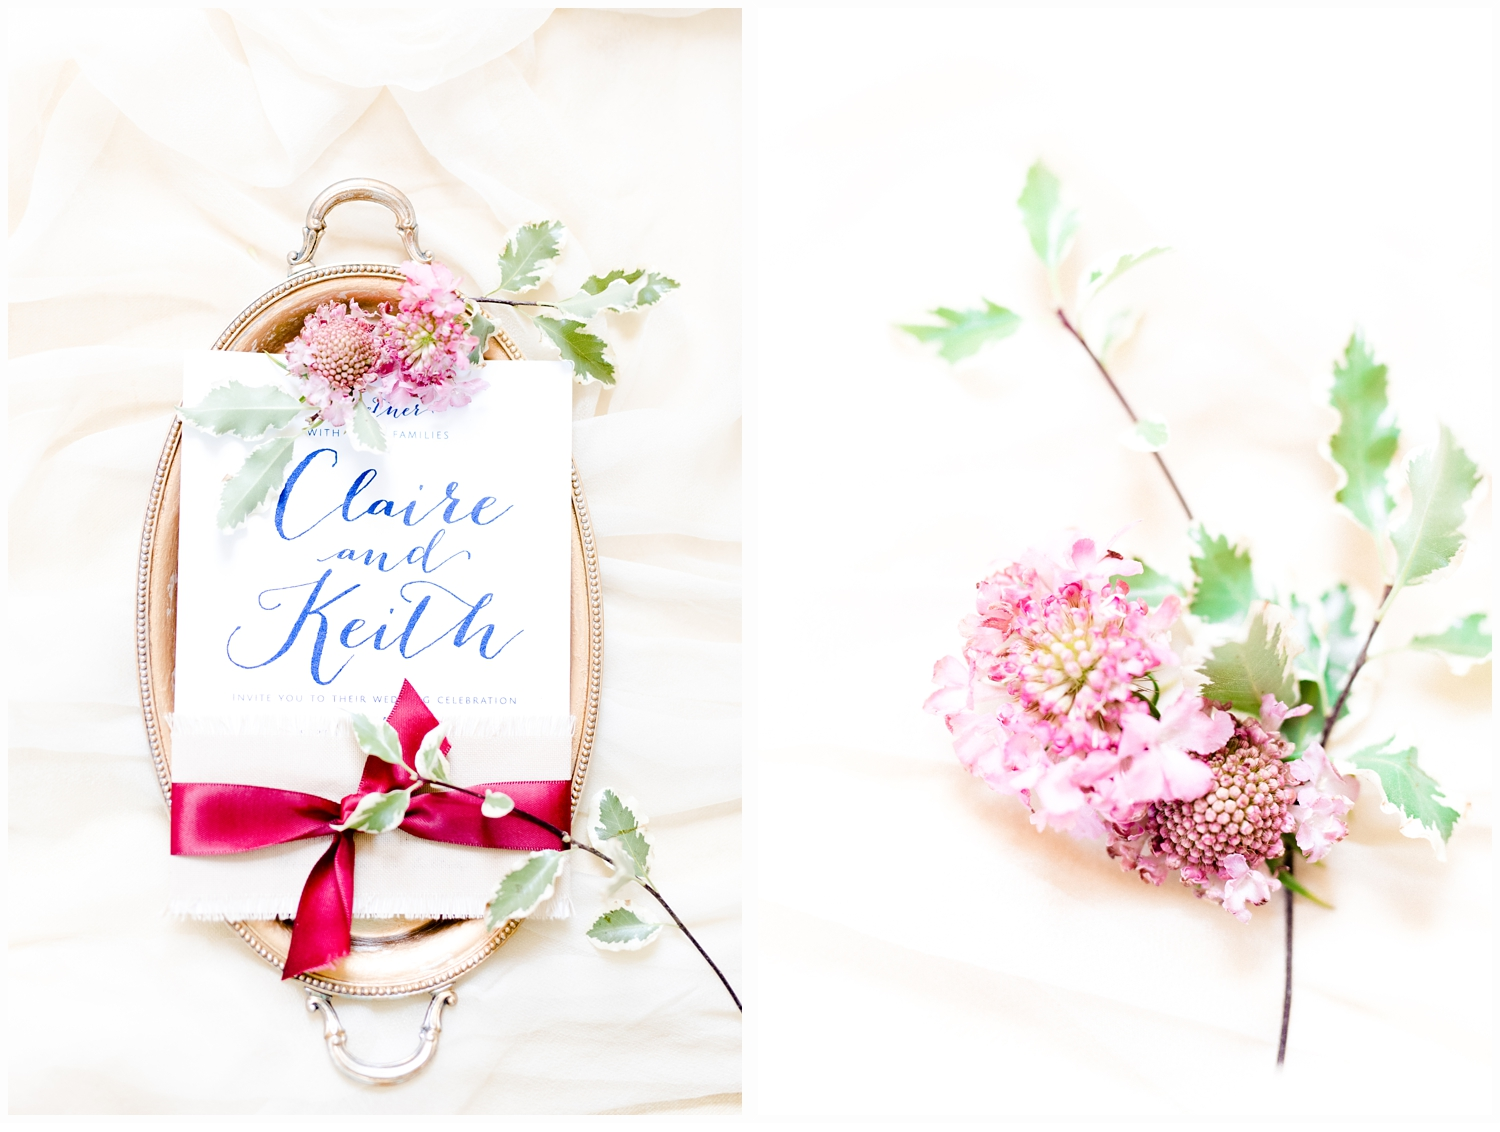 details of invitations on wedding day